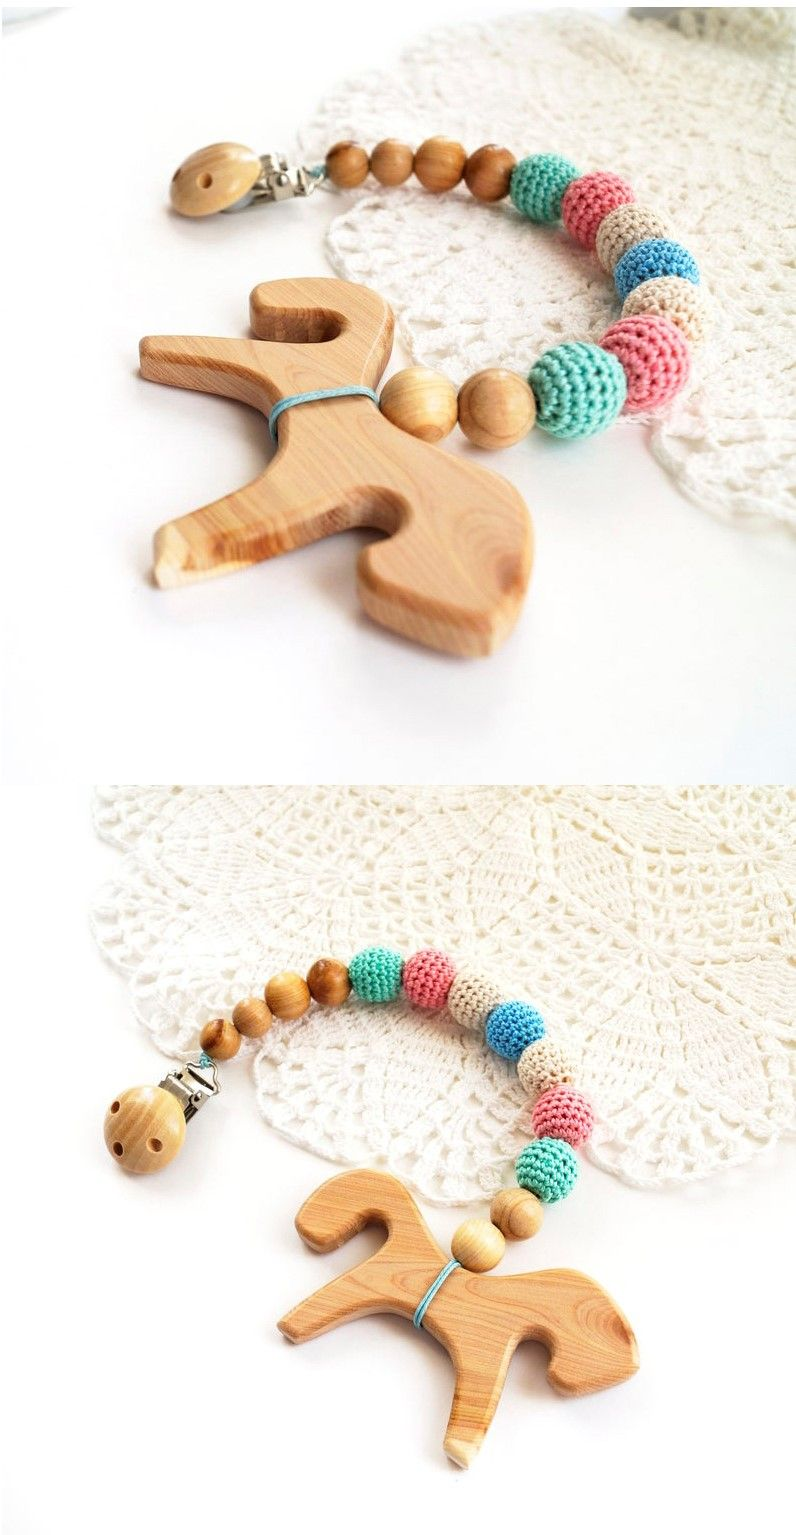 6 month baby toys, dummy clips,horse toy, wooden toys for kids, teething remedies